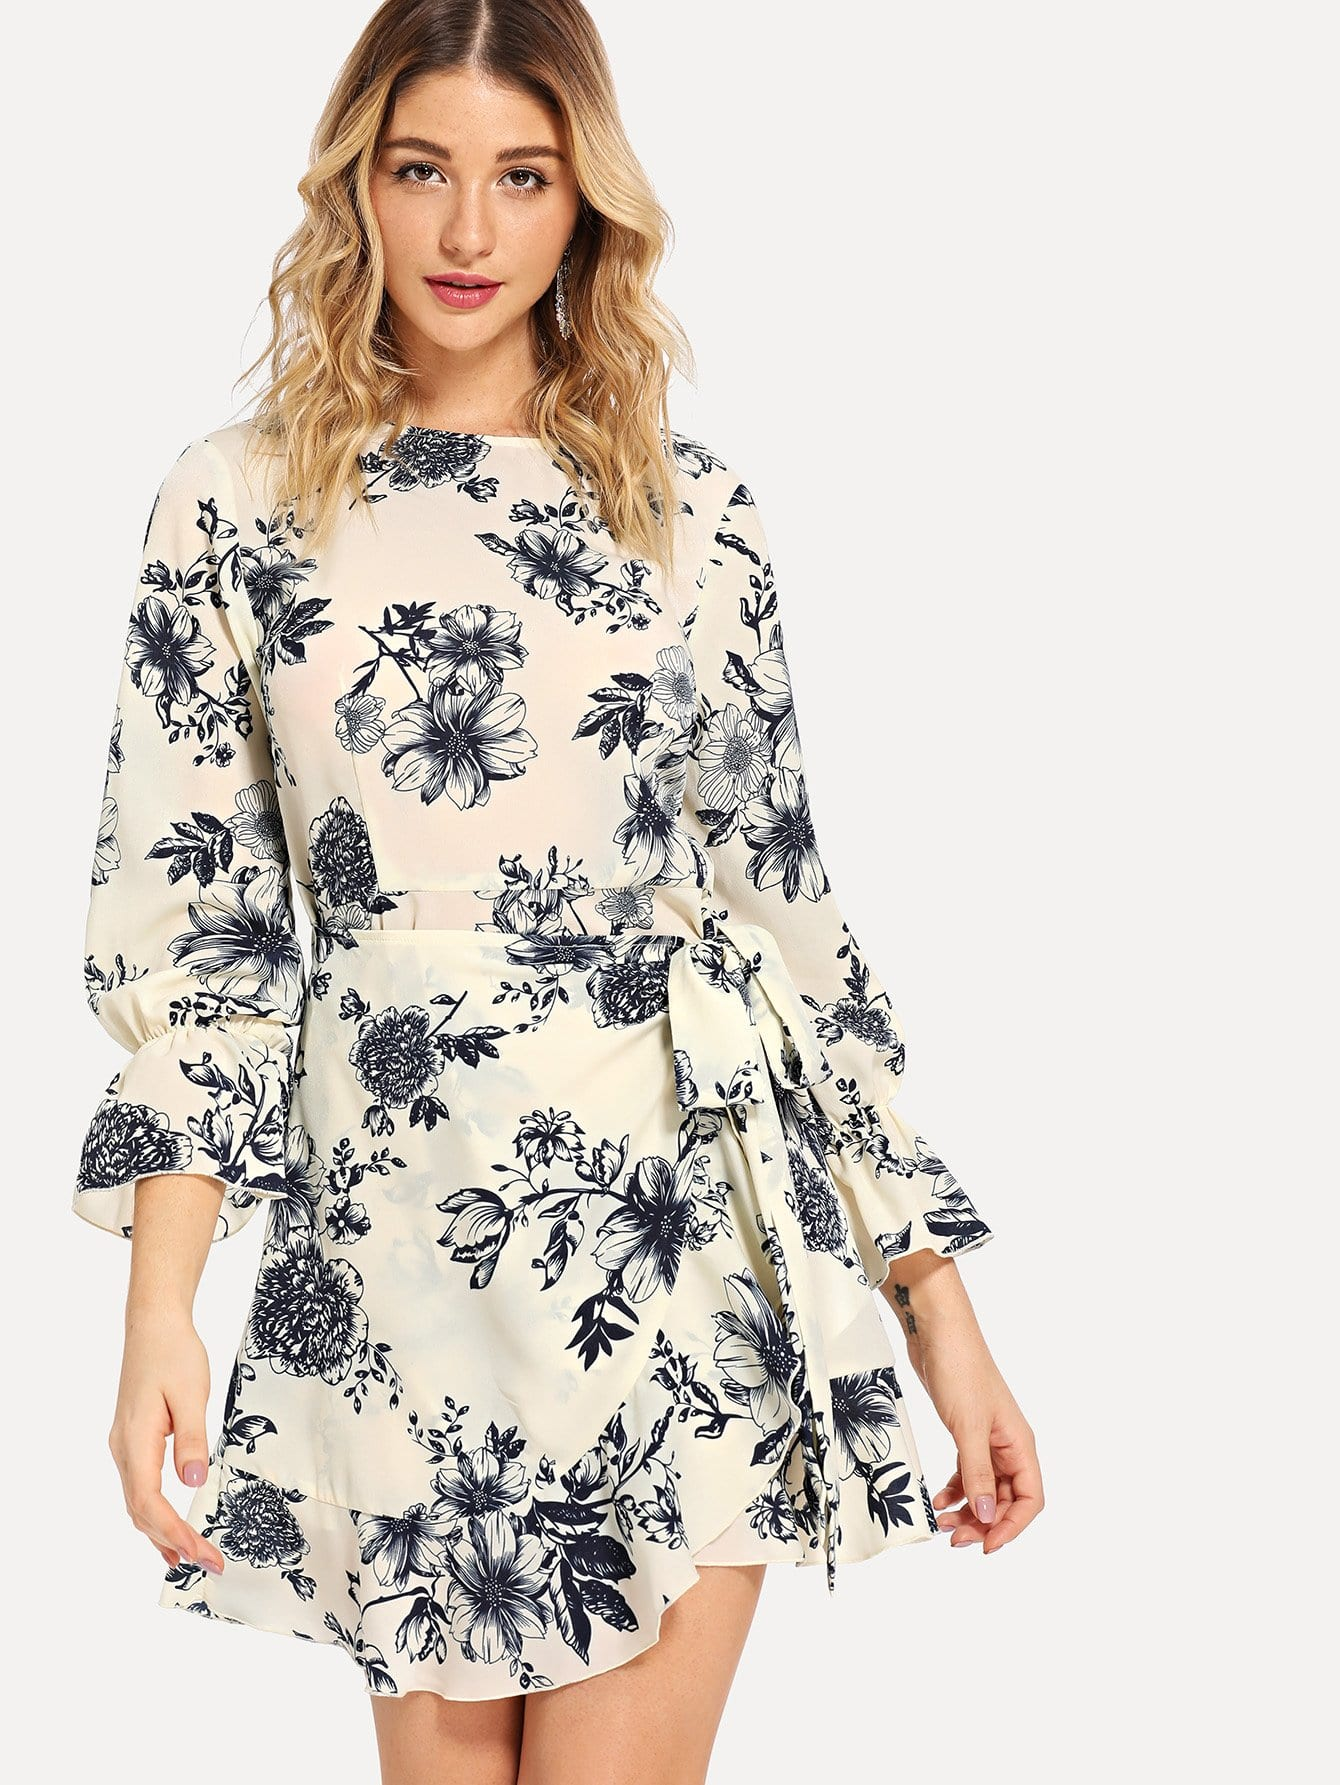 Bell Sleeve Ruffle Hem Floral Wrap Dress bohemian bell sleeve floral midi dress